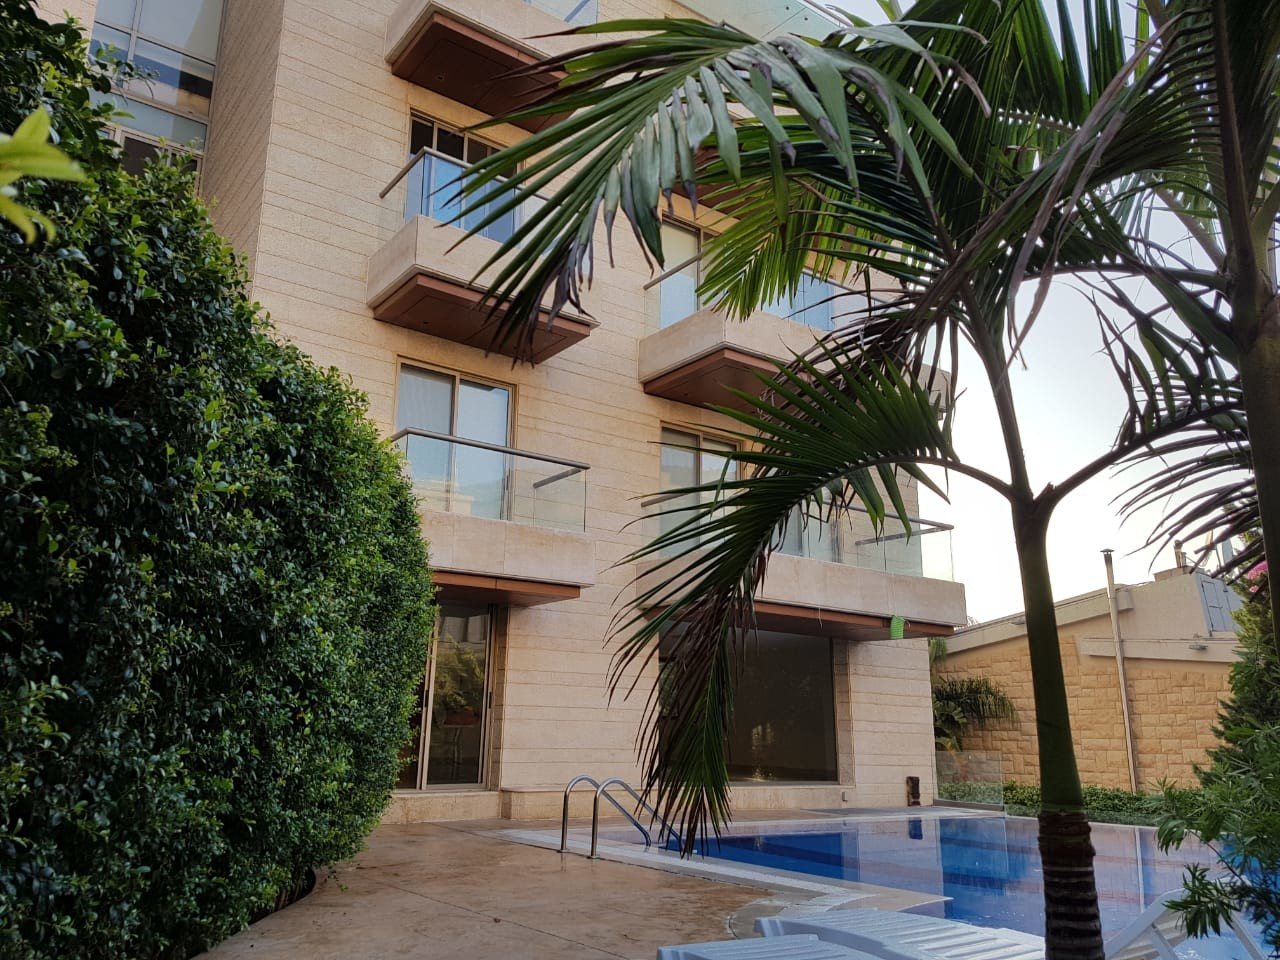 Luxurious furnished apartment for rent in Monteverdi